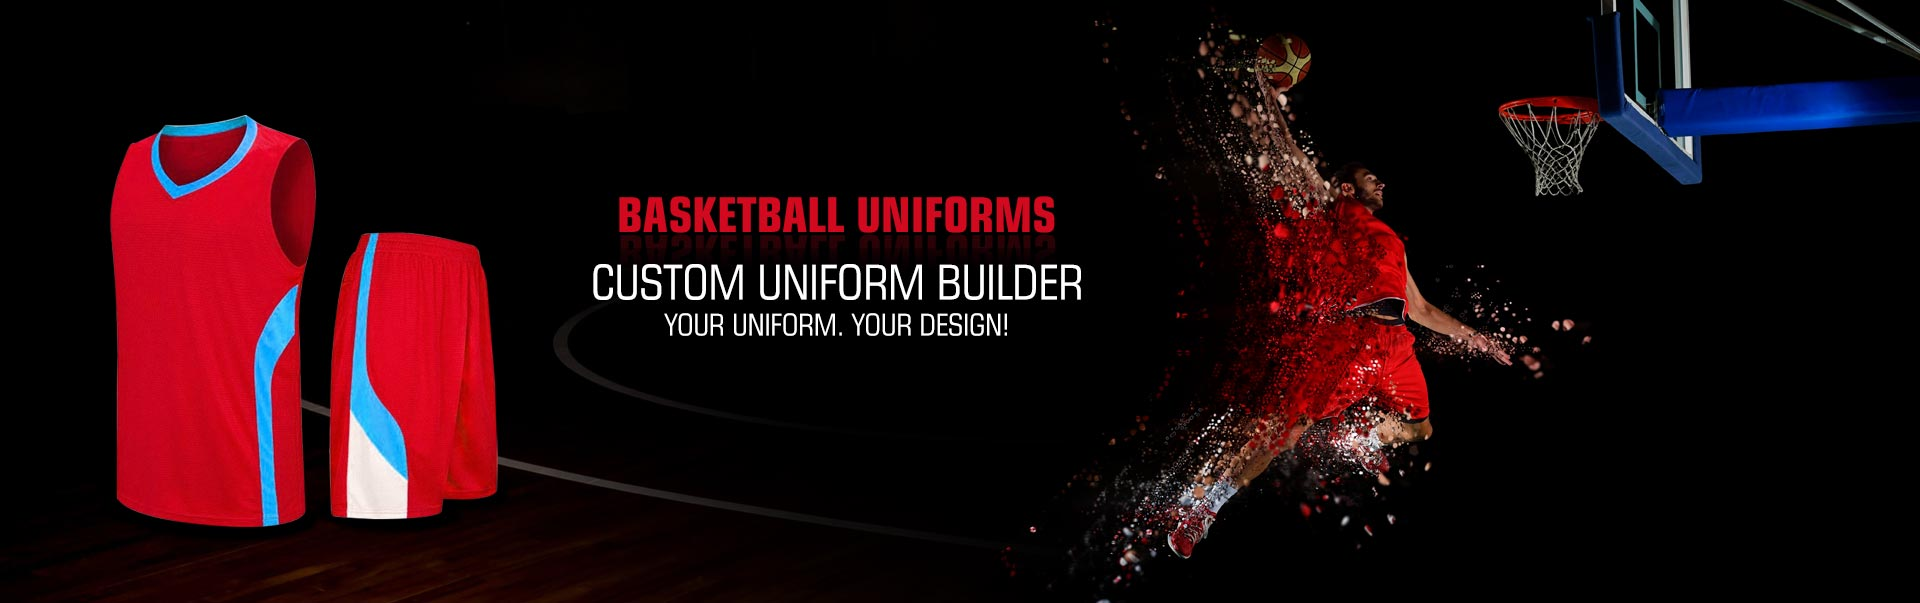 Basketball Uniforms Wholesaler, Suppliers in Novocheboksarsk